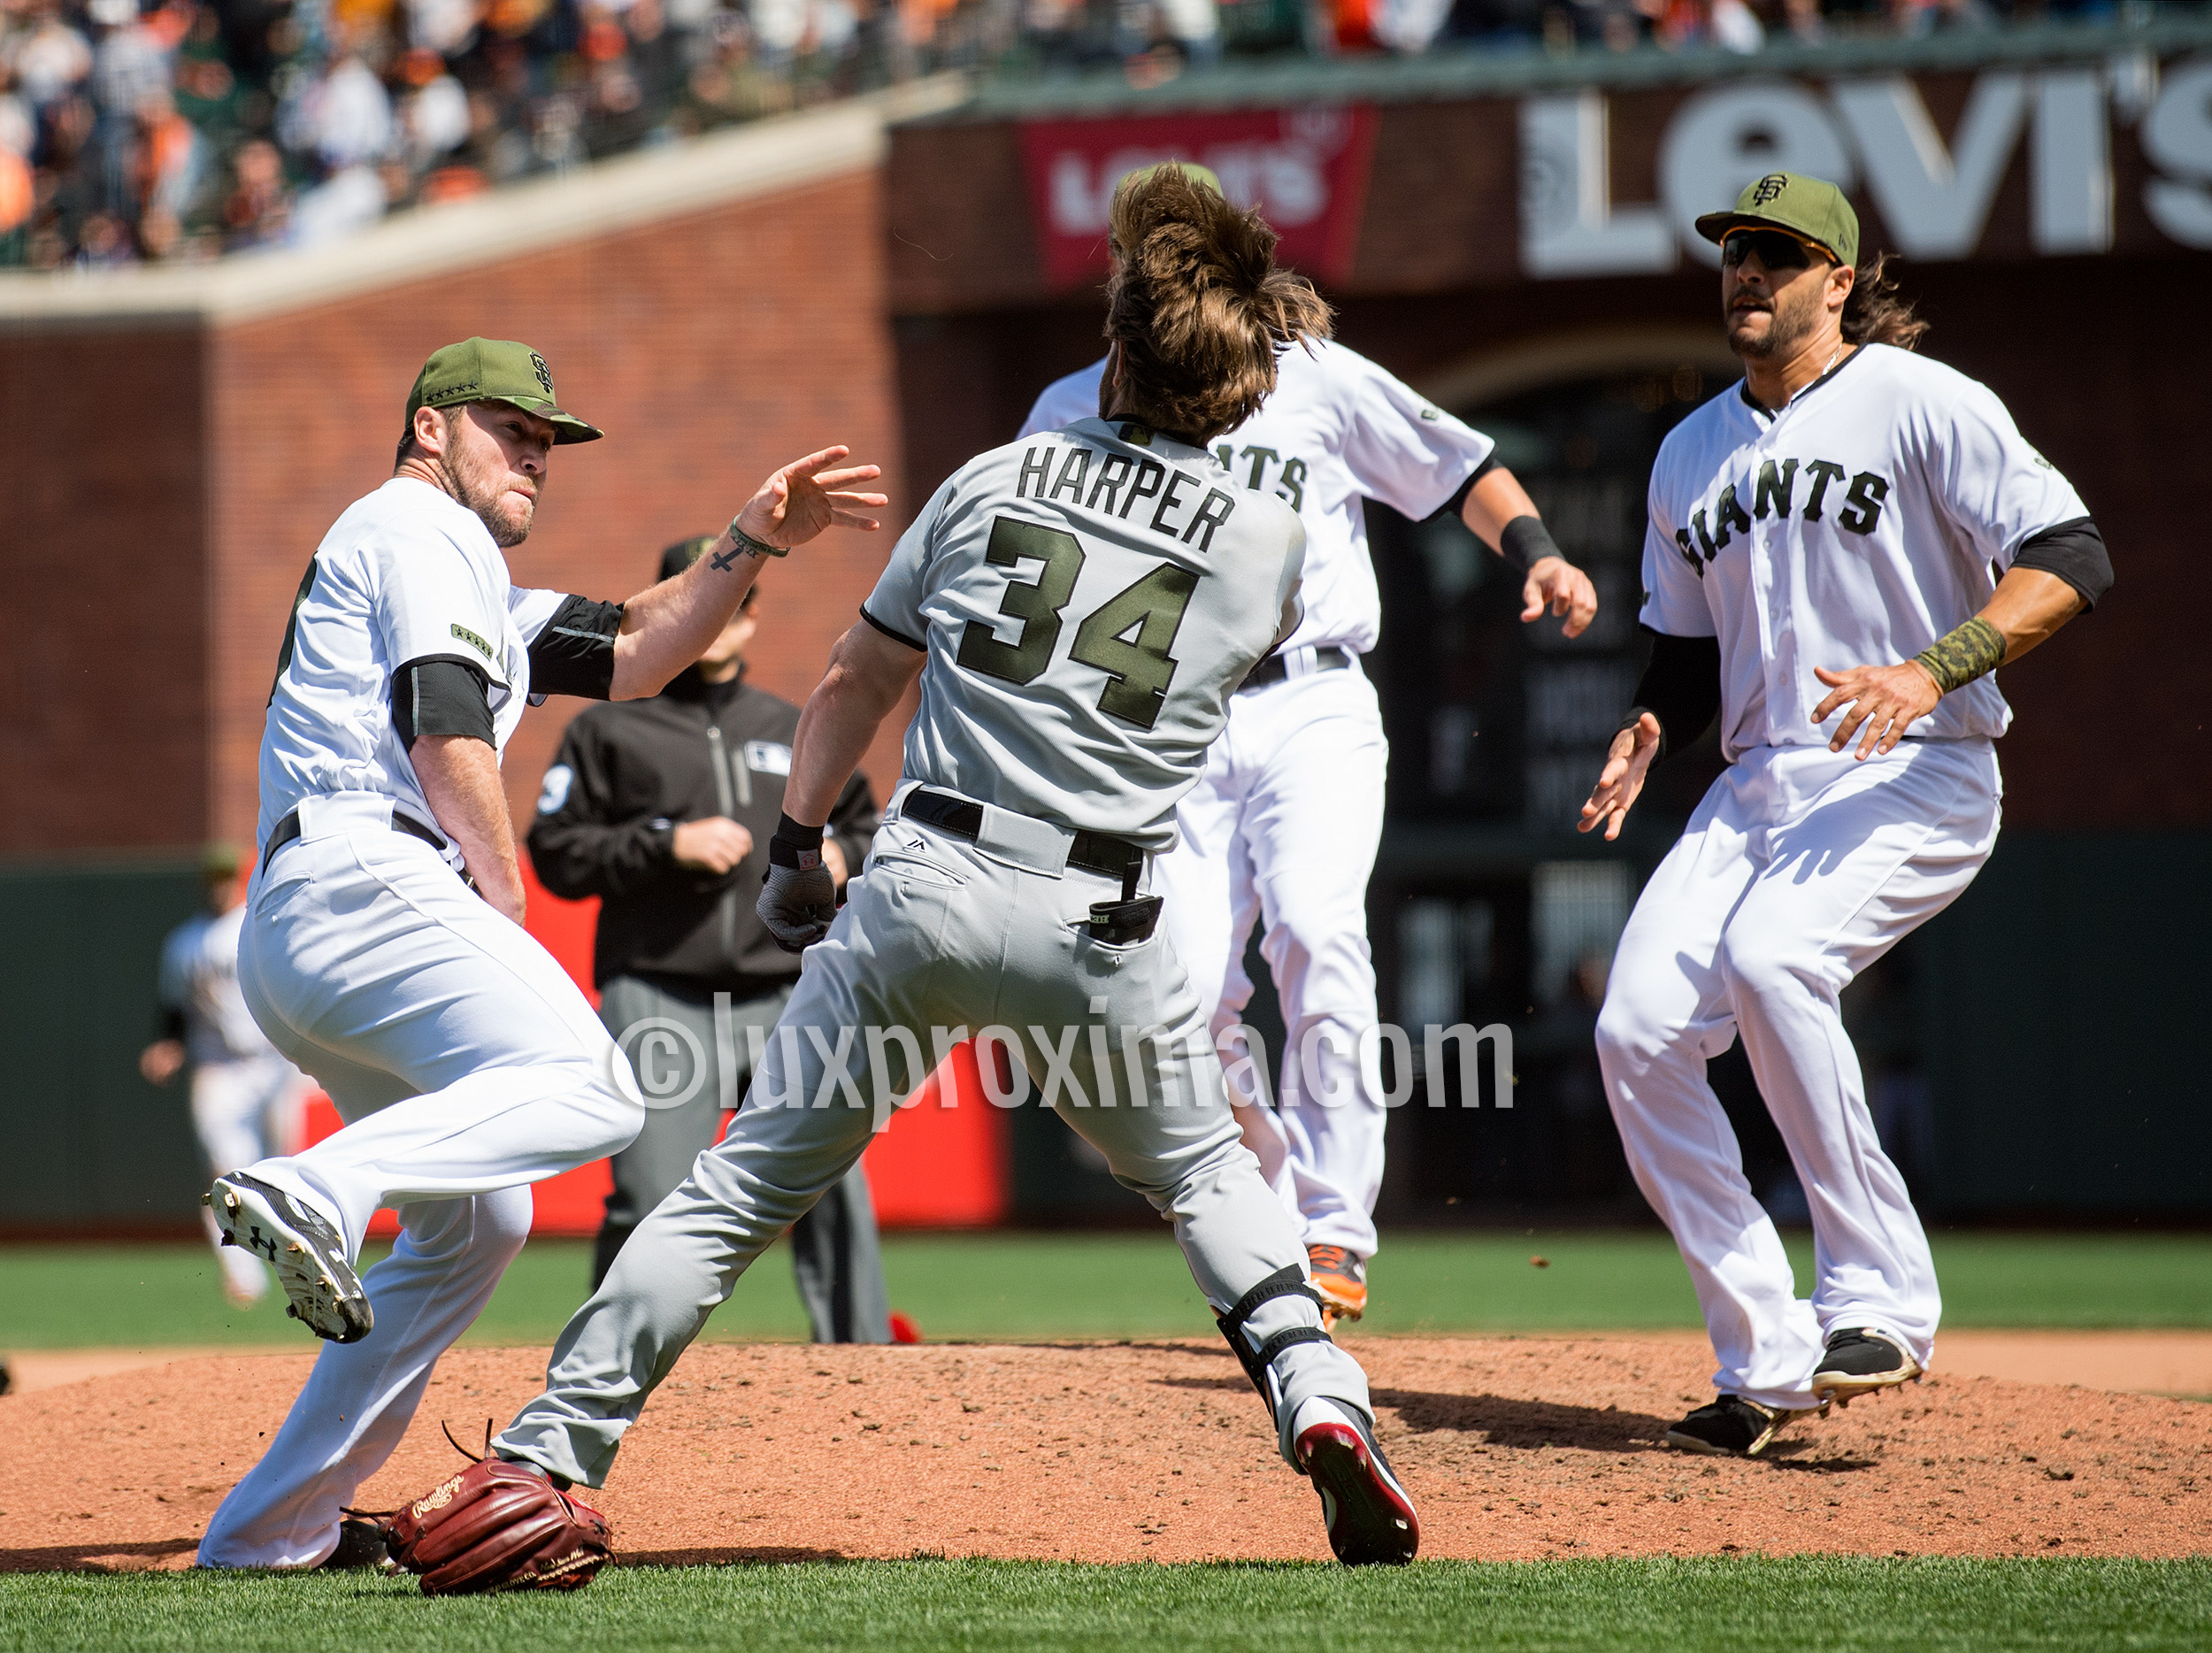 May 29, 2017: After being hit by a pitch, Washington Nationals right fielder Bryce Harper (34) approaches San Francisco Giants relief pitcher Hunter Strickland (60) on the mound. San Francisco Giants first baseman Michael Morse (38) and second baseman Joe Panik (12) (obscured) arrive to break up the fight that broke out during the eighth inning in a MLB baseball game between the Washington Nationals and the San Francisco Giants on Memorial Day at AT&T Park in San Francisco, California. Valerie Shoaps/CSM